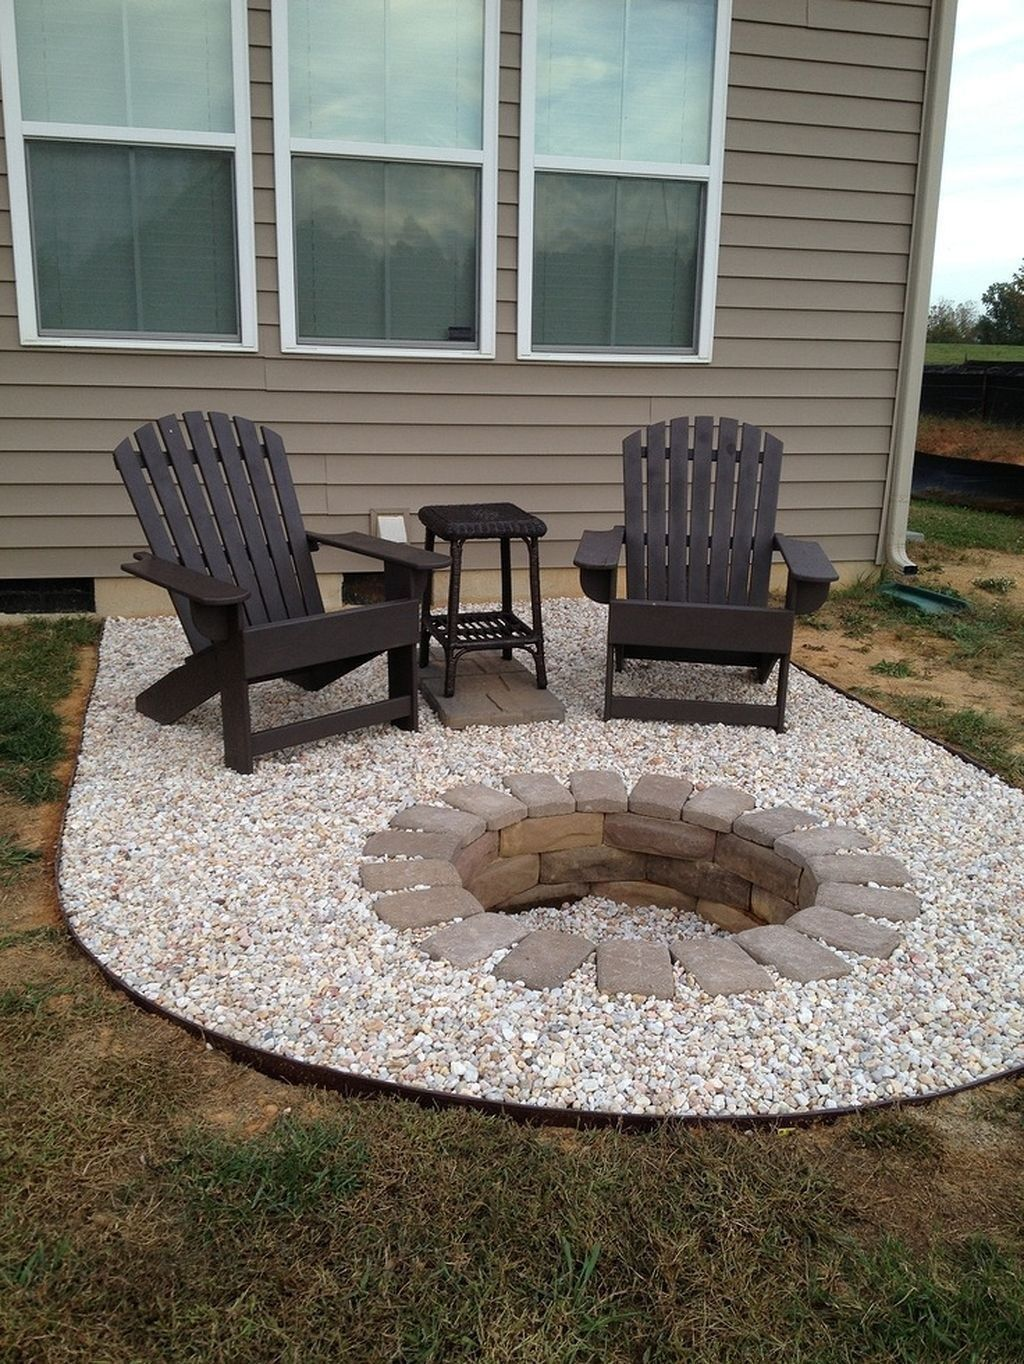 Photo of 20+ Creative Build Round Firepit Area Ideas For Summer Nights – COODECOR